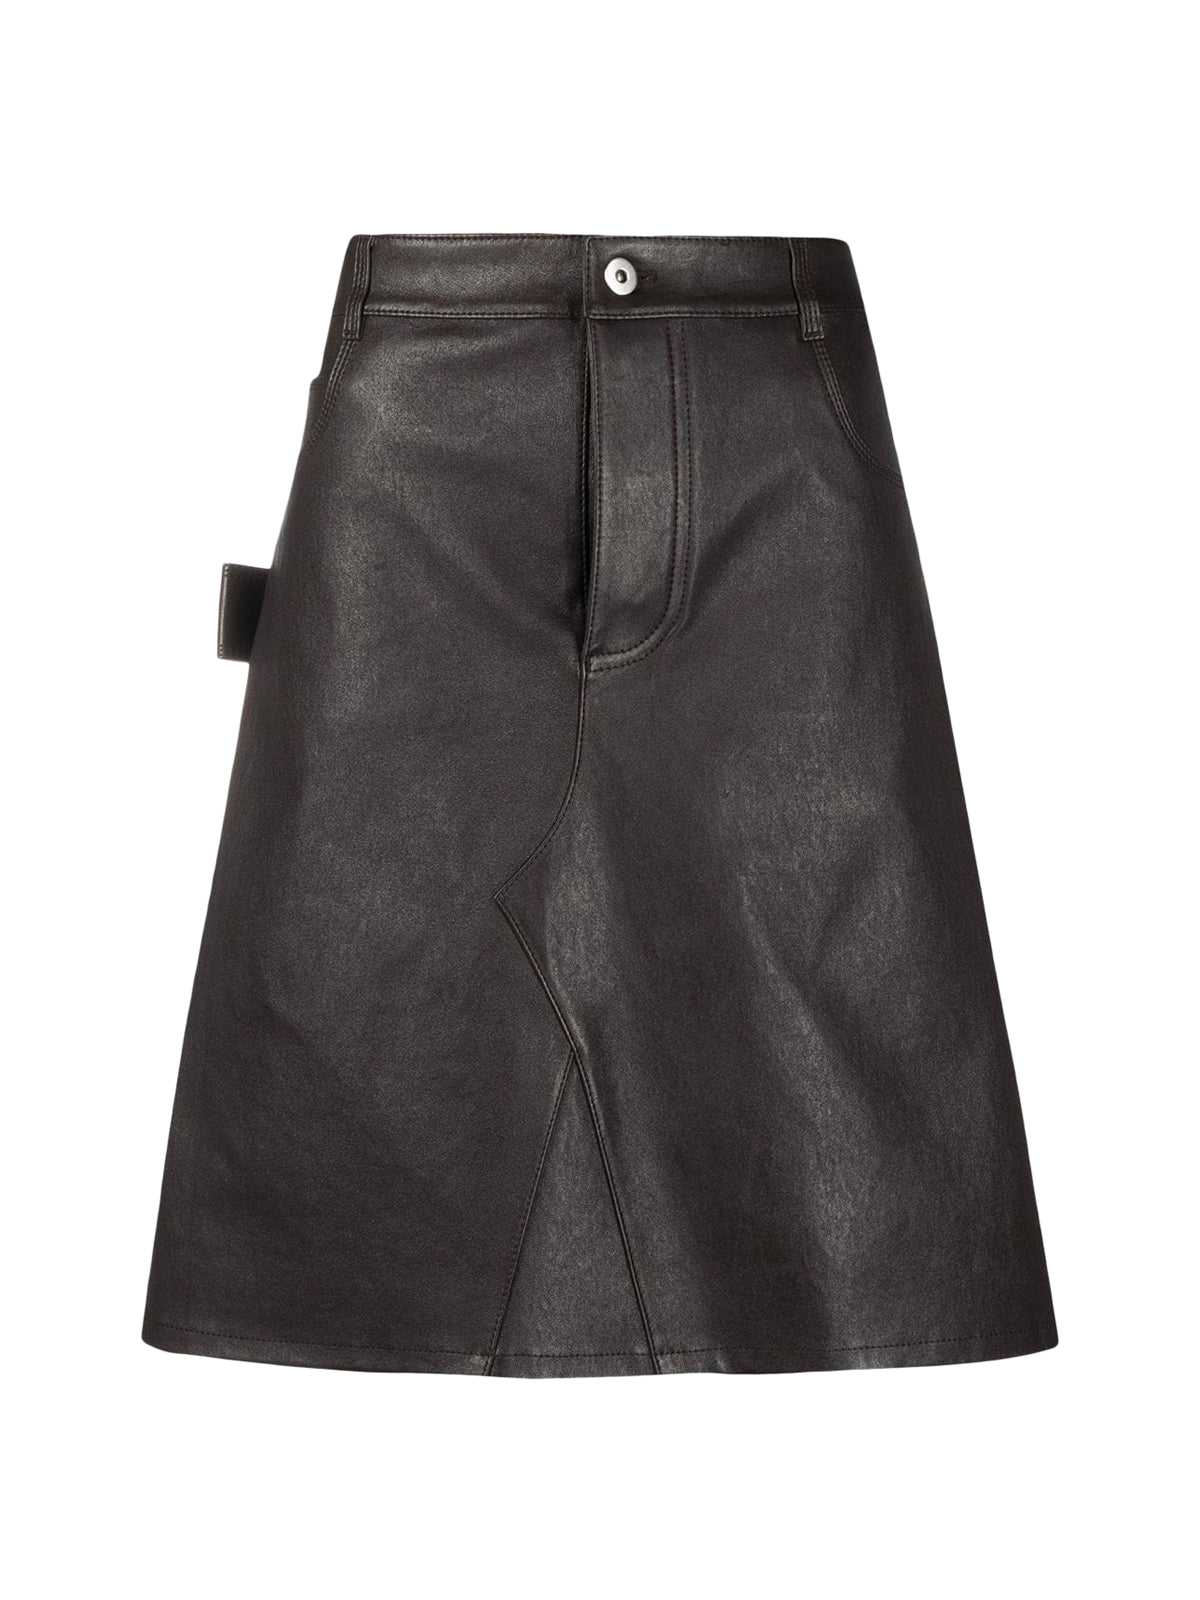 SKIRT IN LEATHER